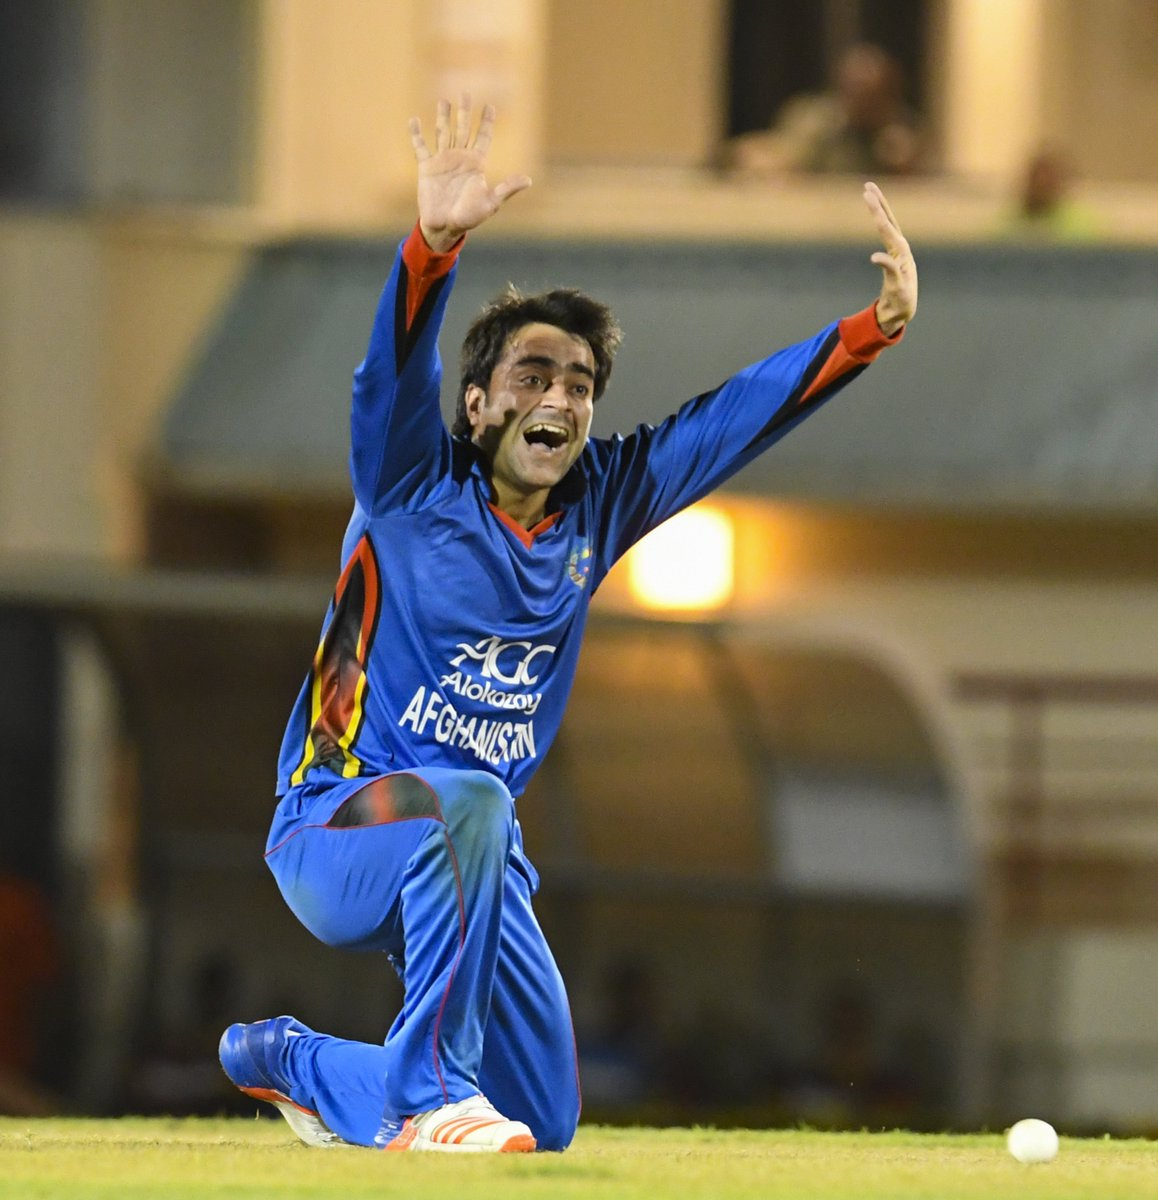 Afghanistan spin sensation @rashidkhan_19 has become the youngest man to top the @MRFWorldwide ICC Player Rankings, now the number one ODI bowler alongside @Jaspritbumrah93!   bit.ly/ODIRankings20F…